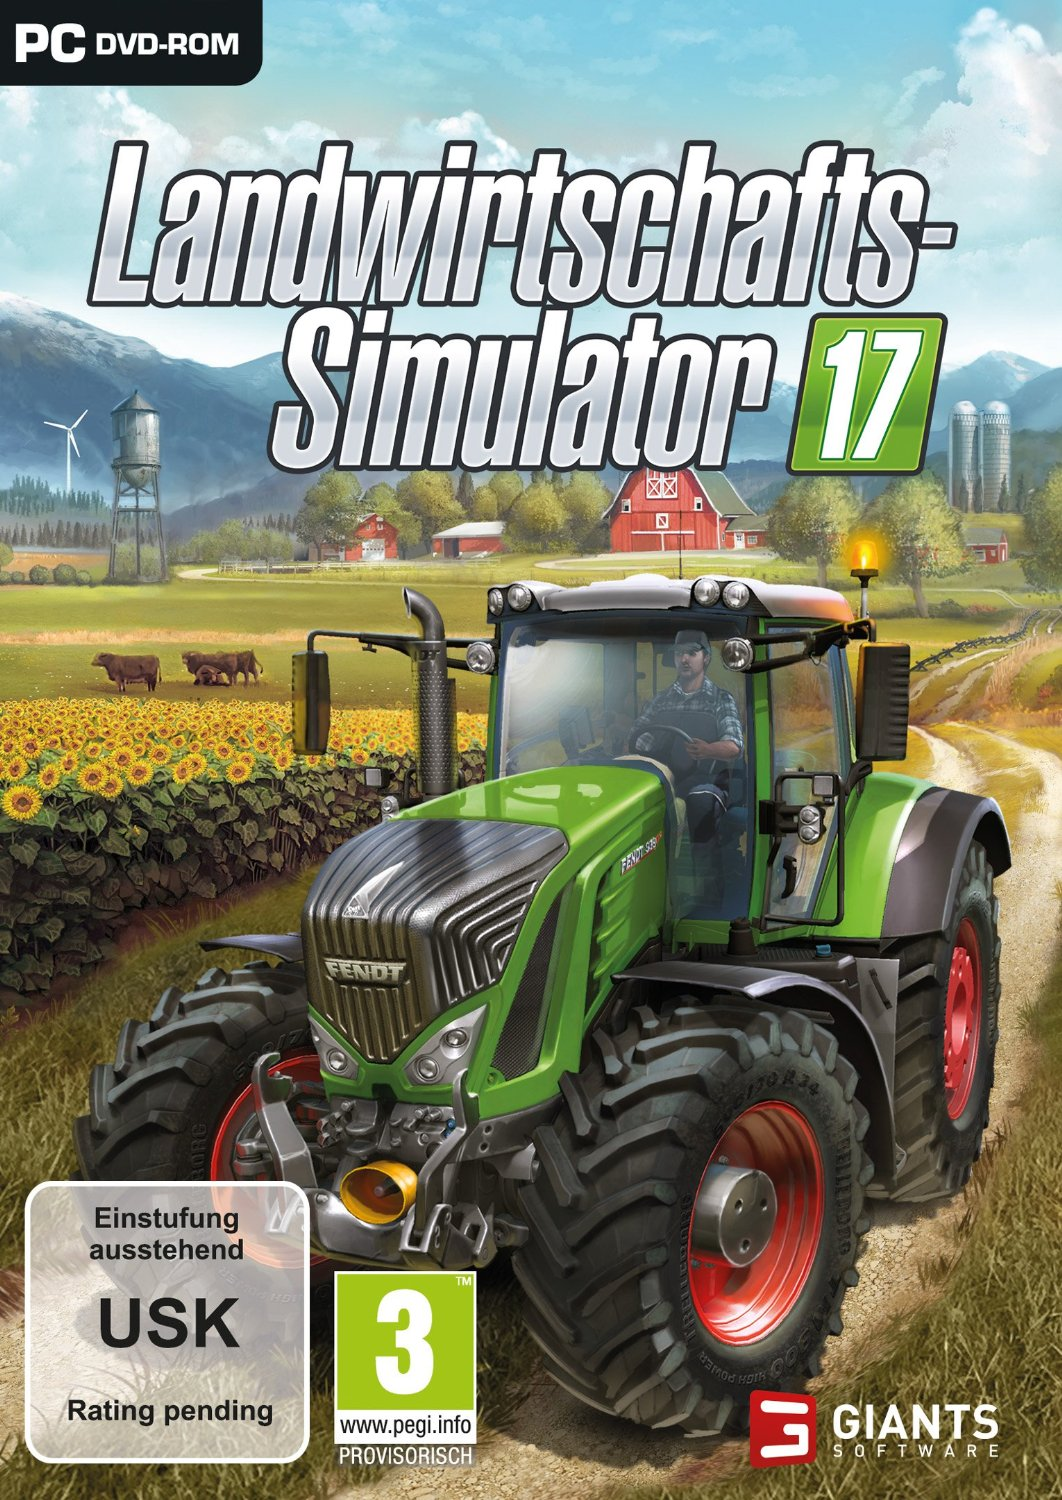 17 Best Images About Kylie Kristen Jenner On Pinterest: Landwirtschafts-Simulator 17: Editionen, Season Pass Und